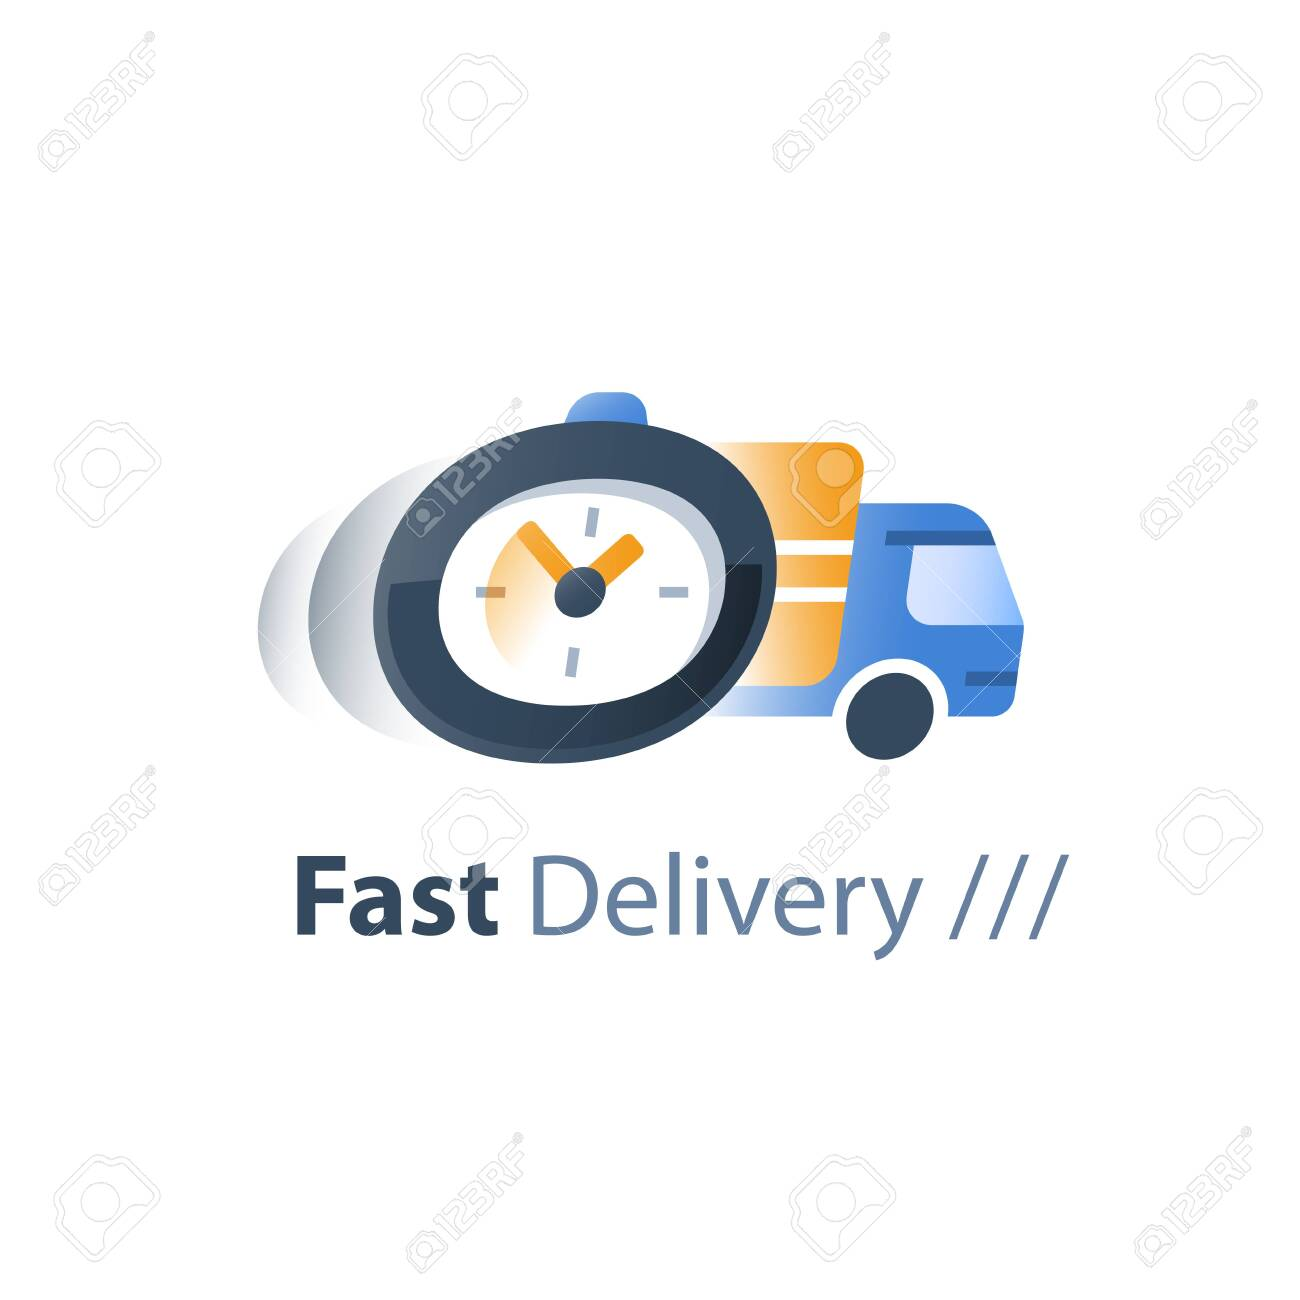 Fast delivery services, logistics company, waiting time period, order delay, move truck, order express shipping, vector flat icon - 128323117